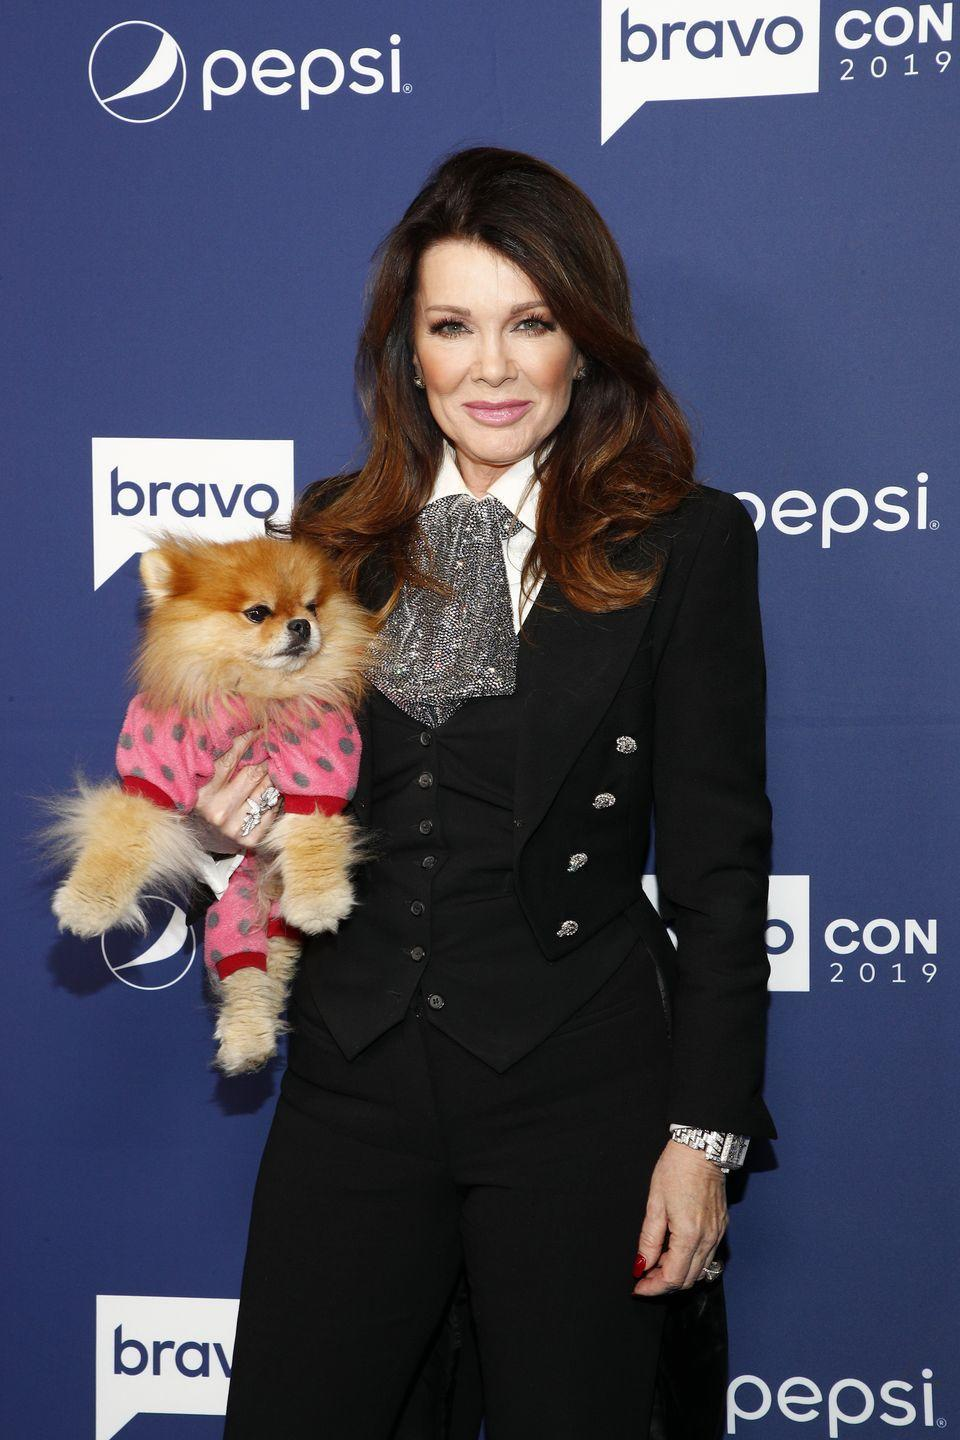 """<p><em>Beverly Hills </em>mainstay Lisa Vanderpump quit the <em>Real Housewives</em> in 2019 after """"PuppyGate""""—the season-long debacle in which a rescue puppy from Vanderpump Dogs (named Lucy Lucy Apple Juice, ICYWW) adopted by co-star Dorit Kemsley ended up in a kill shelter after it was re-homed it to a friend. Lisa's fellow <em>Housewives</em> accused her of planting negative stories about Dorit in the press, which she denied. Lisa slowly distanced herself from the group before stopping filming altogether. Just after Andy Cohen revealed that she wouldn't attend the season 9 reunion taping, LVP <a href=""""https://www.dailymail.co.uk/tvshowbiz/article-7104309/Lisa-Vanderpump-quits-Real-Housewives-Beverly-Hills-skipping-reunion.html"""" rel=""""nofollow noopener"""" target=""""_blank"""" data-ylk=""""slk:announced"""" class=""""link rapid-noclick-resp"""">announced </a>that she was quitting the show for good.</p>"""